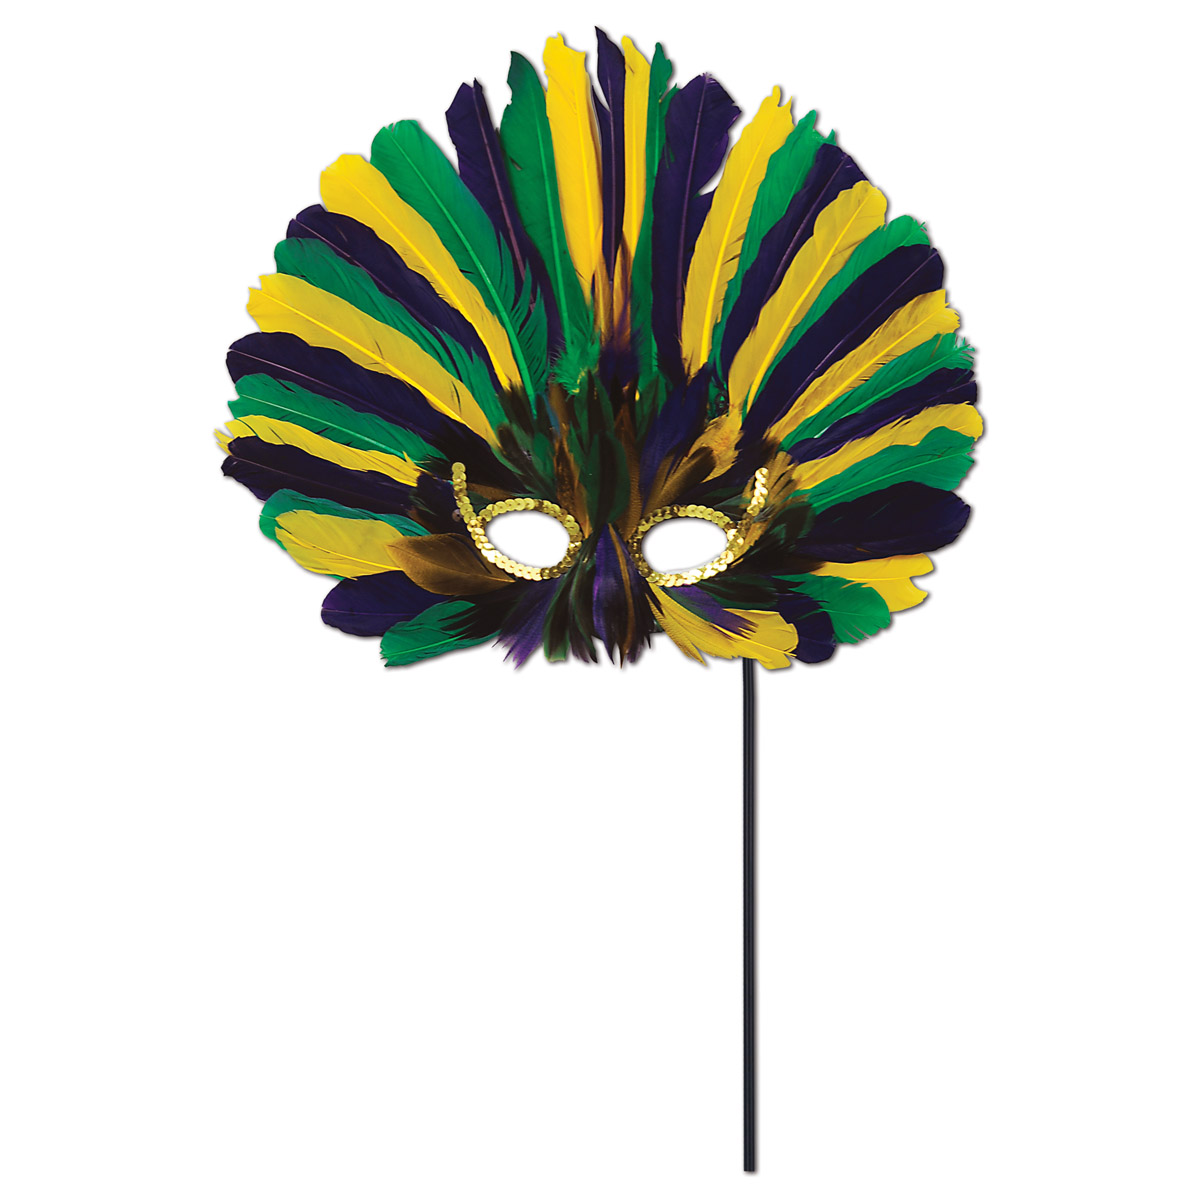 Club Pack of 12 Festive Green, Golden-Yellow and Purple Feathered Mardi Gras Masquerade Masks